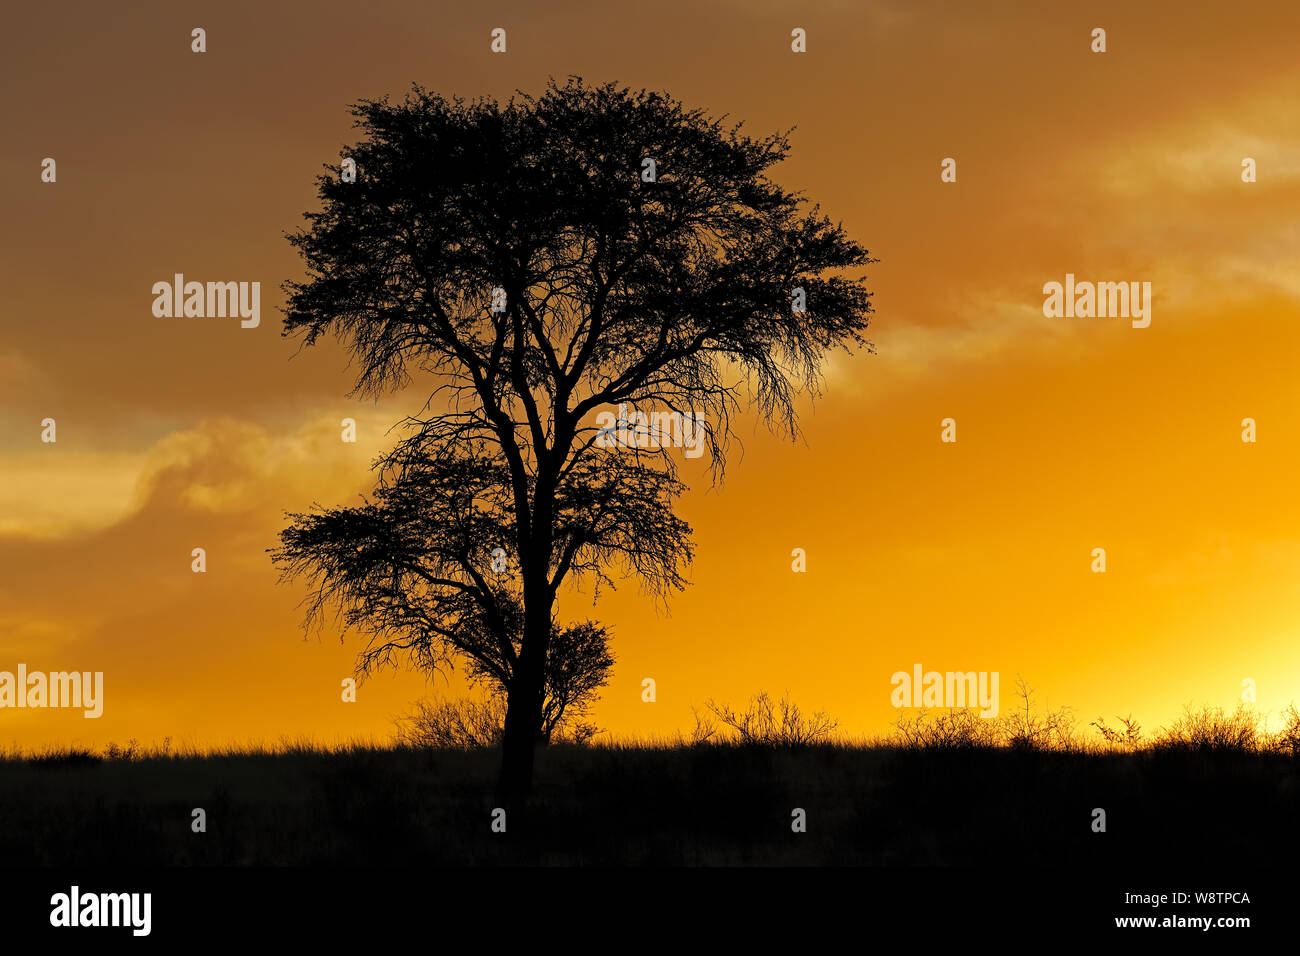 Sunset with silhouetted African thorn tree and clouds, Kalahari desert, South Africa Stock Photo